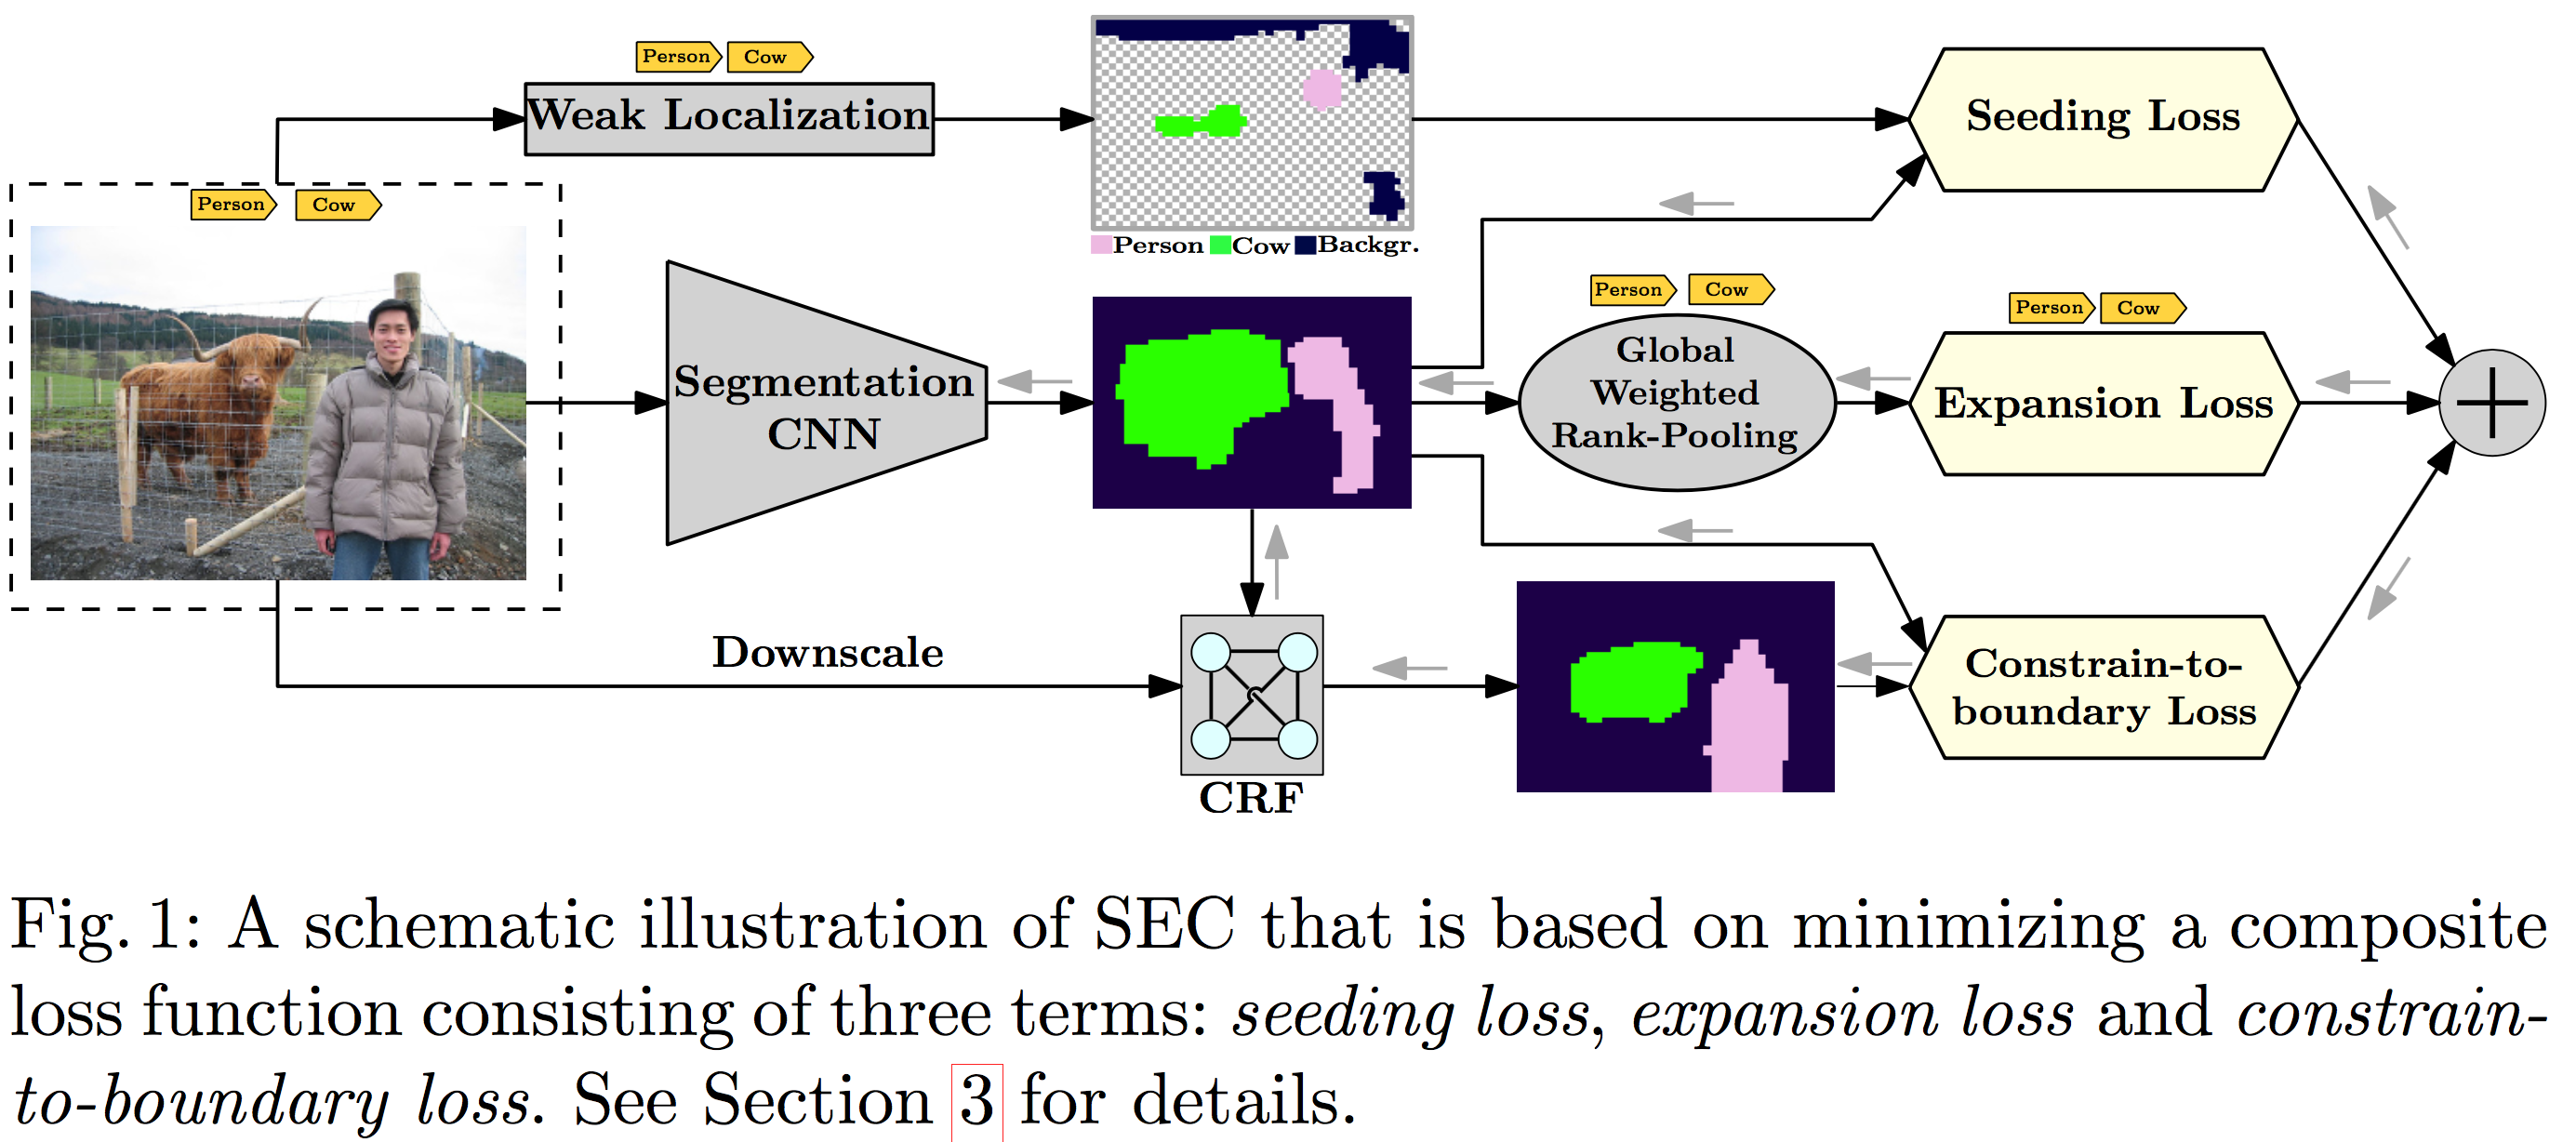 A schematic illustration of SEC